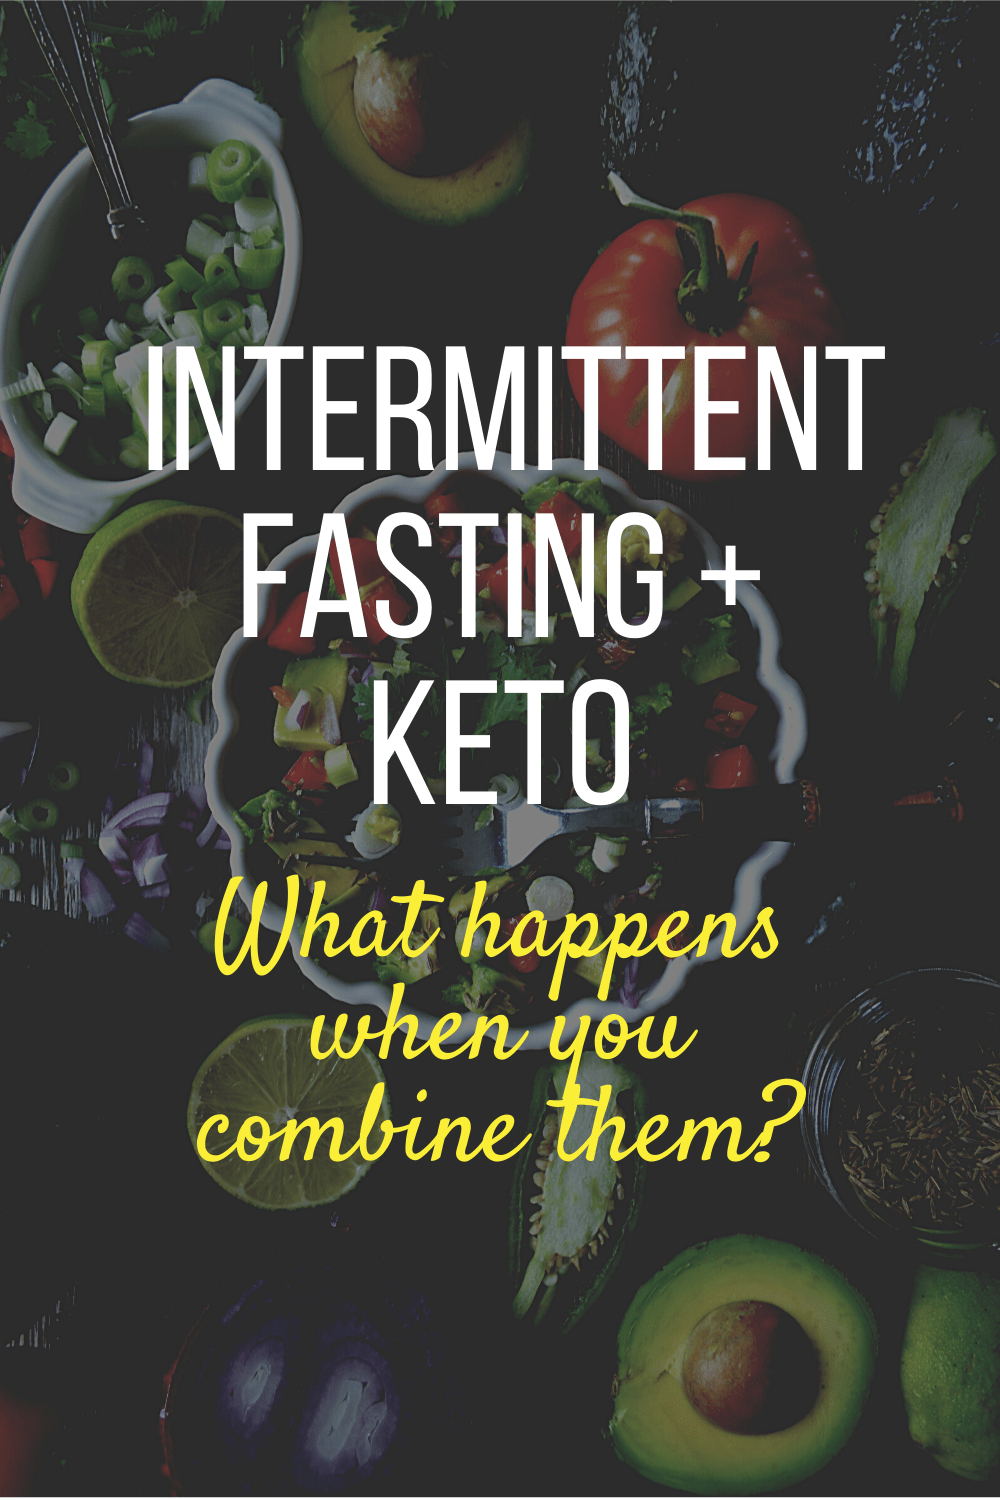 Have you ever wondered whether it's possible to combine intermittent fasting and keto for healthy weight loss? We've got the answers - as well as the low down on the women who should avoid it